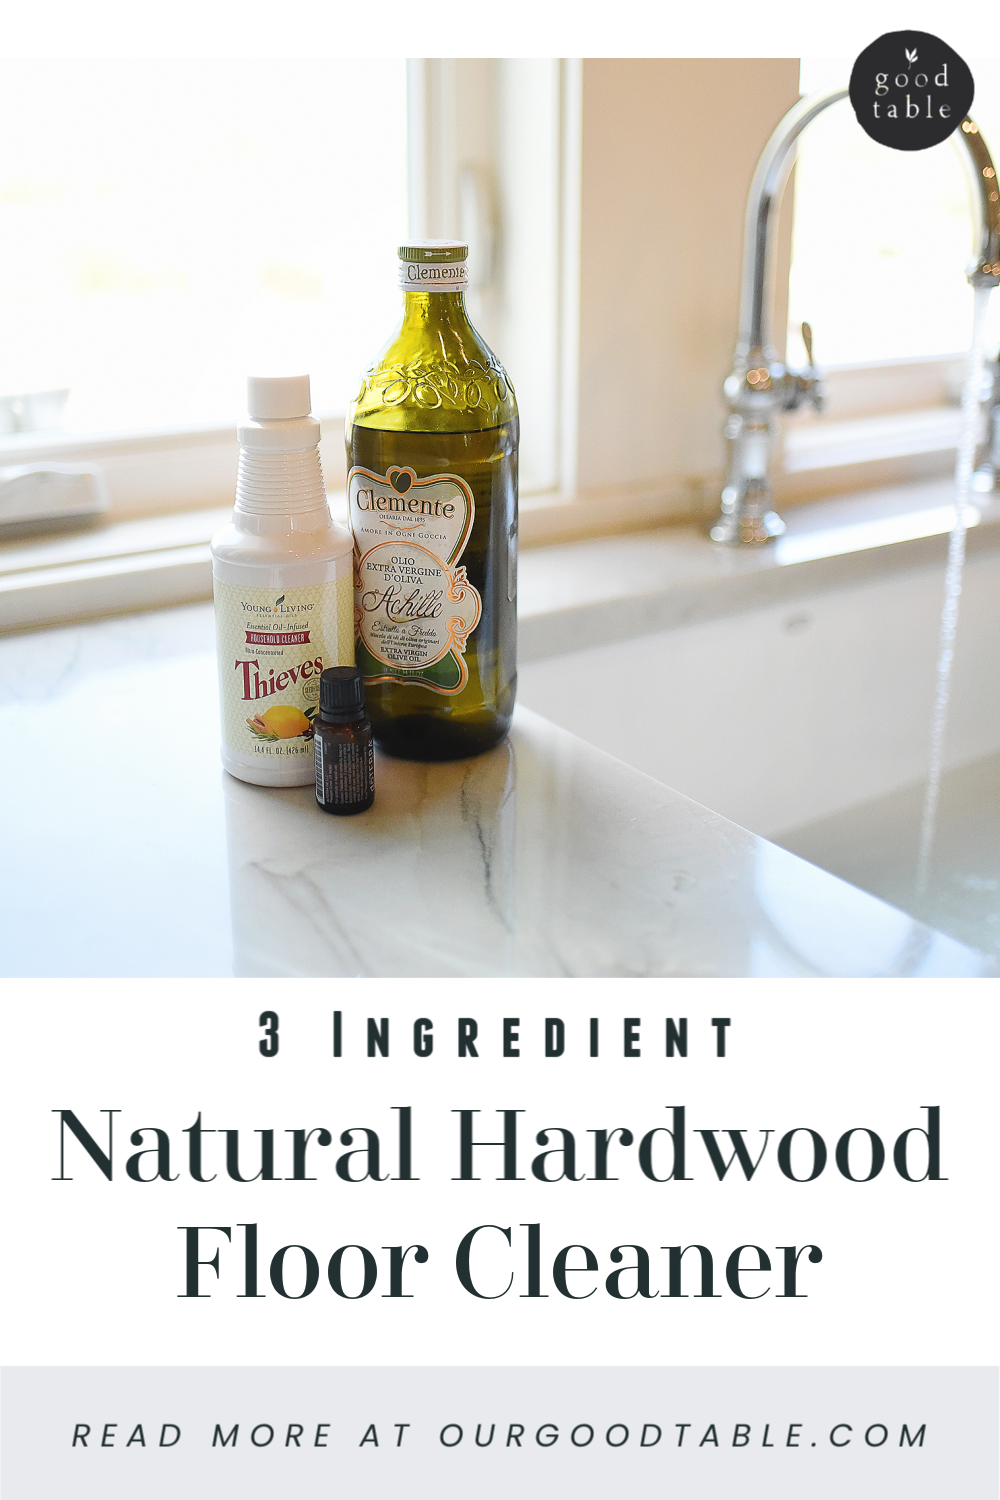 You only need 3 Ingredients to clean your hardwood floors.